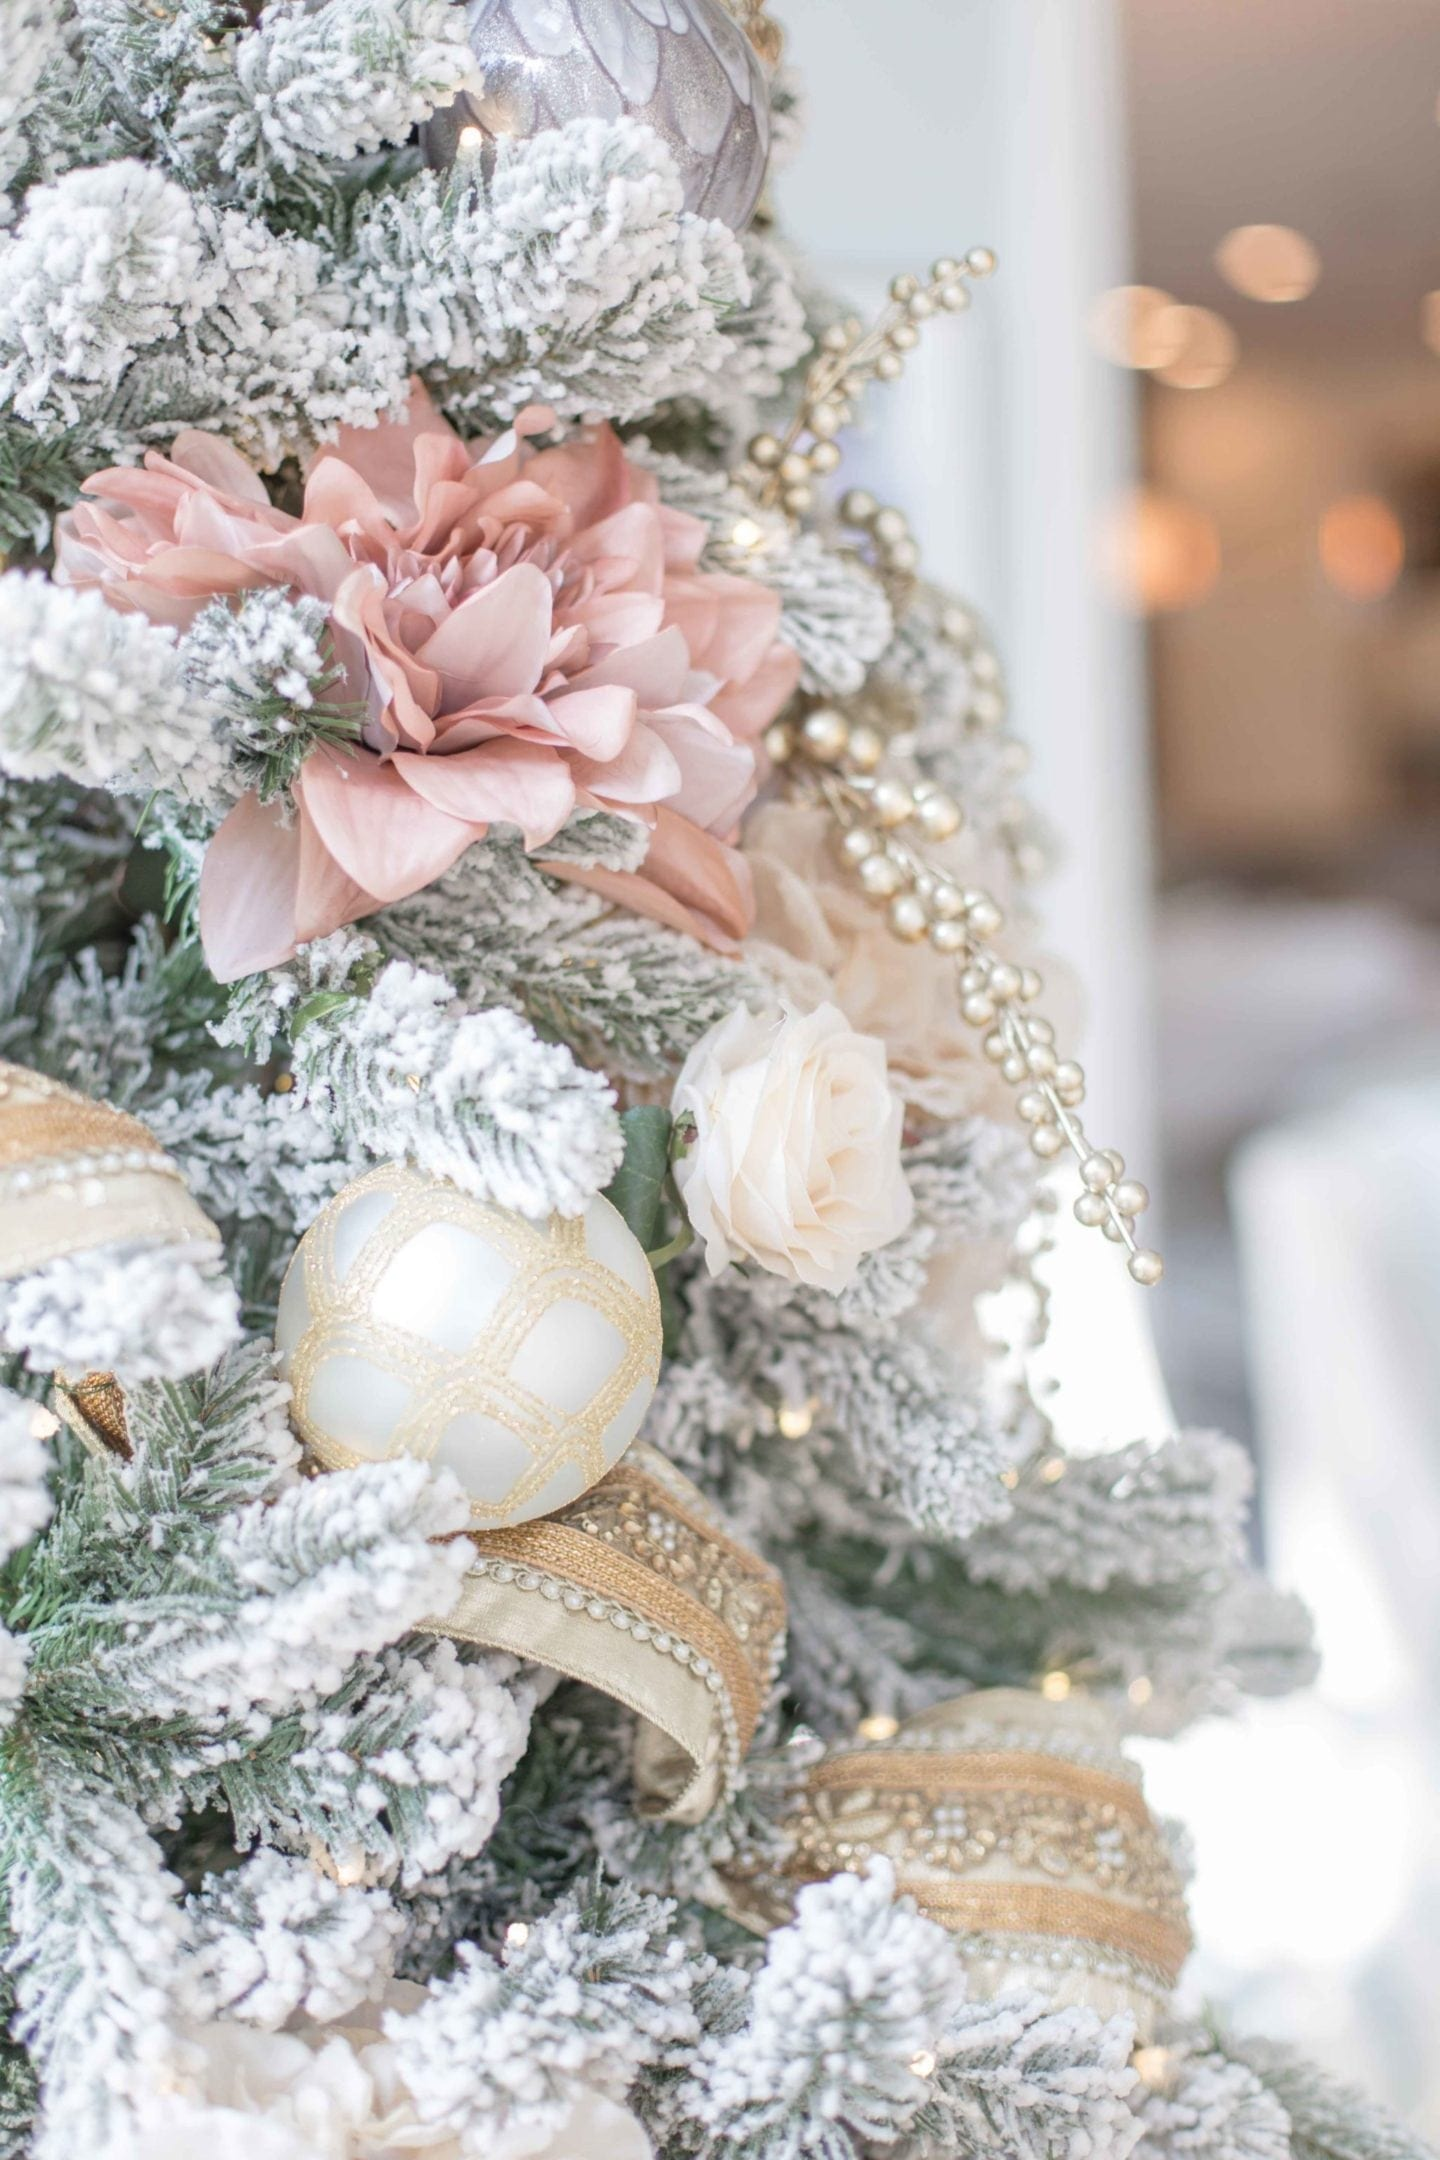 Fake hydrangeas on a Christmas Tree. A beautiful tree decorated in shades of blush pink with Frontgate ornaments and flowers from AFloral.com